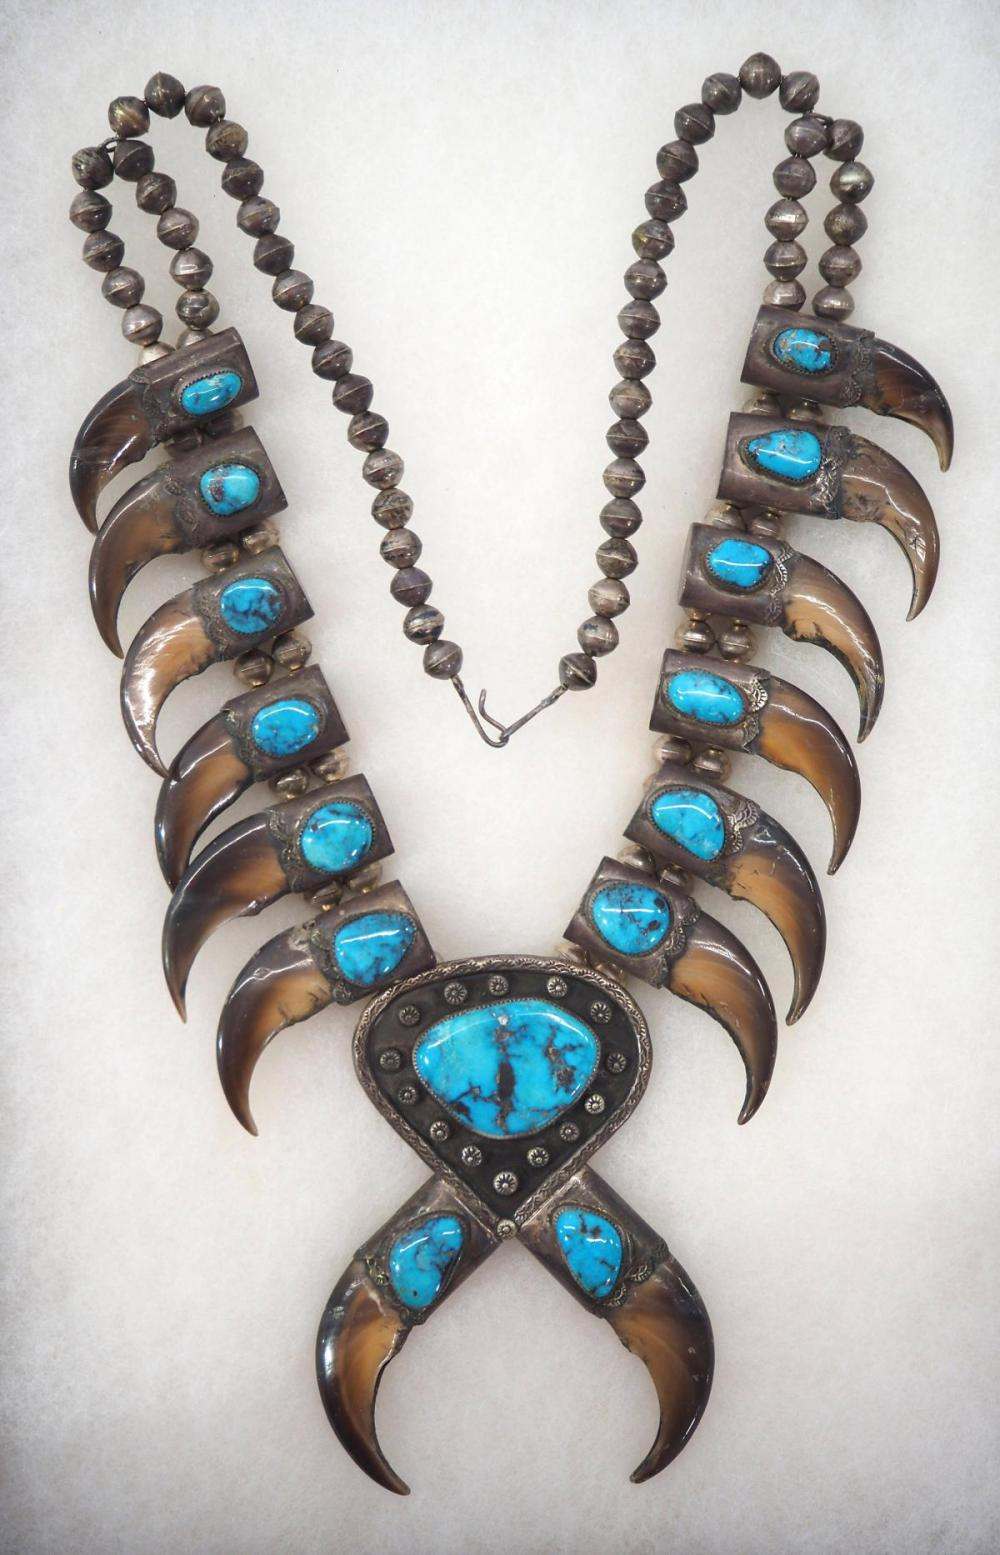 South-west style necklace